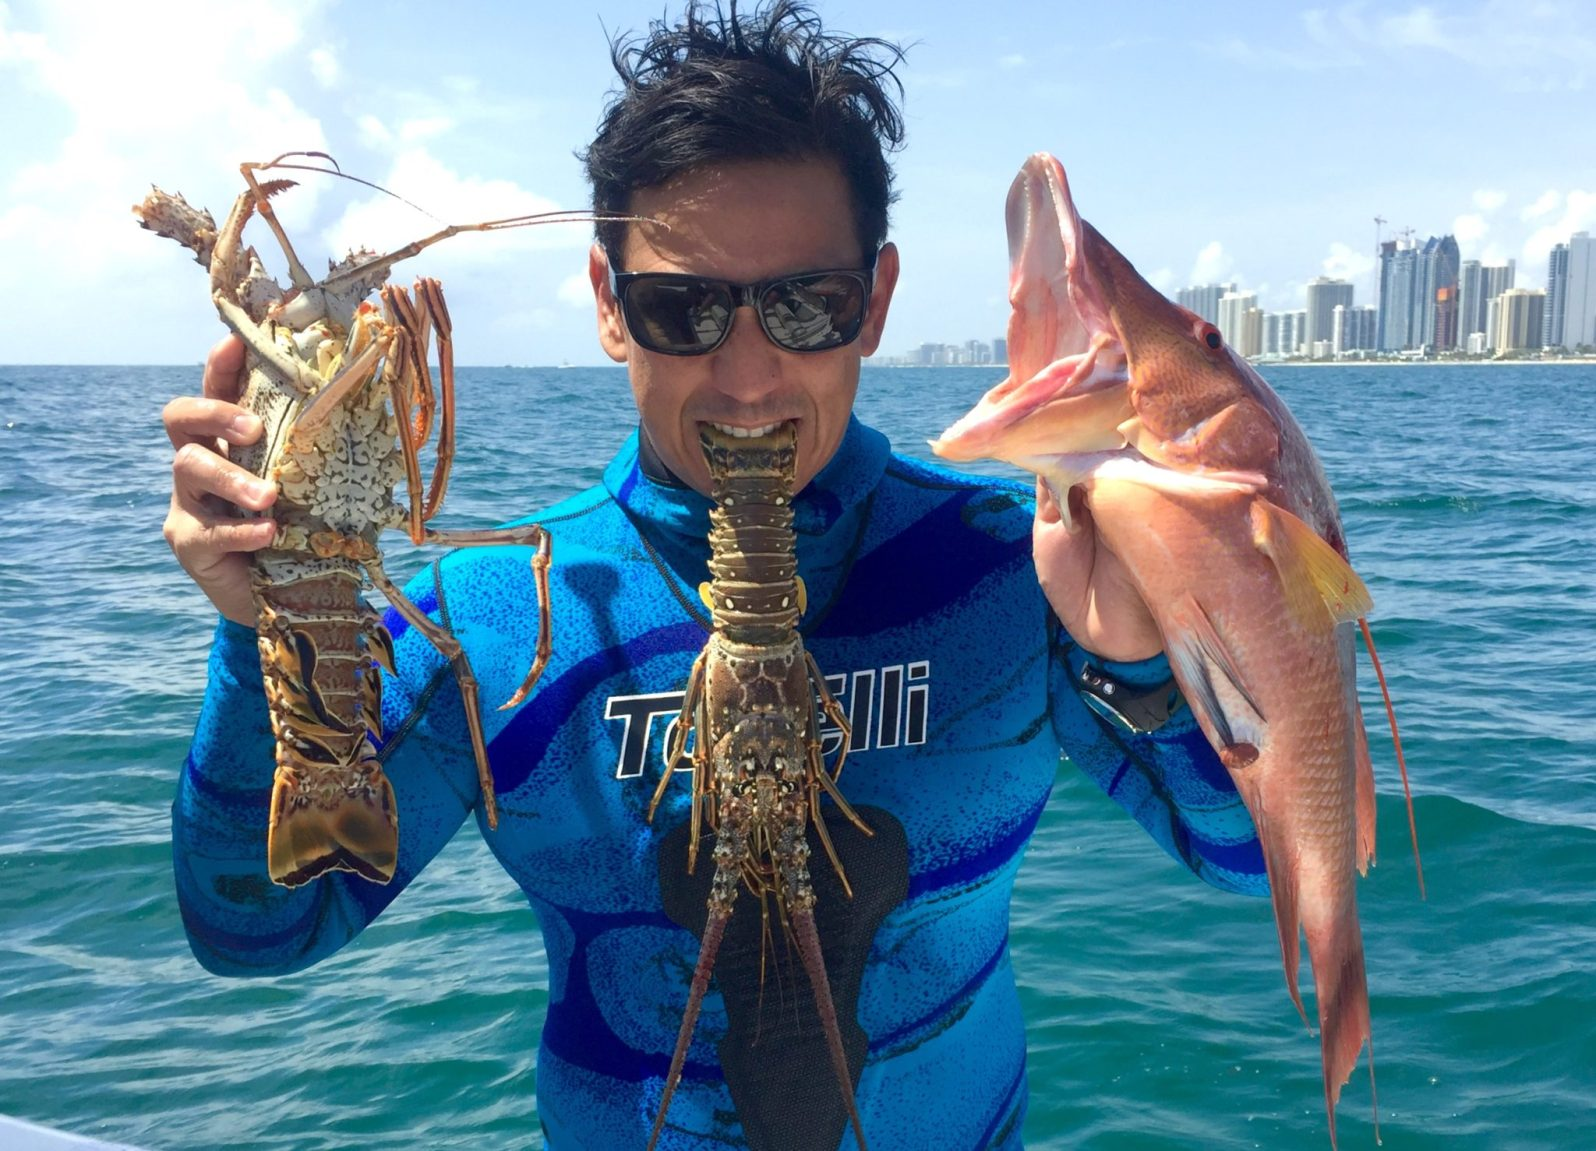 Roy Ferreira with a fresh catch, with Miami in the background. (Photo courtesy of Roy Ferreira)